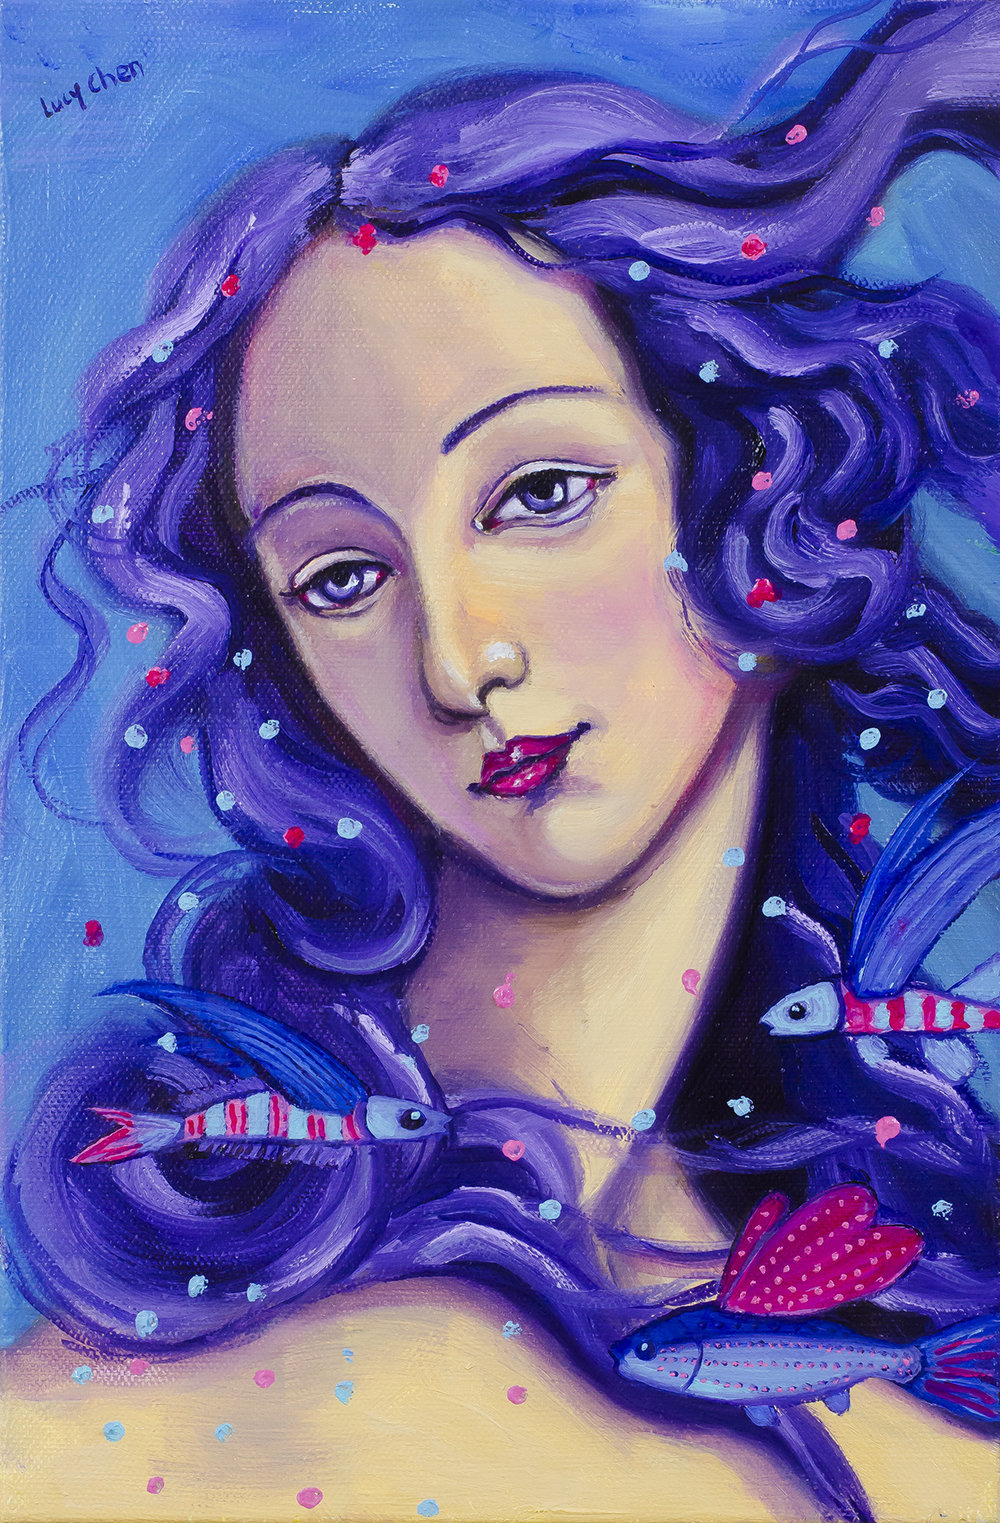 VENUS AND HER FLYING FISH, oil on stretched canvas, by Lucy Chen. Original Sold.